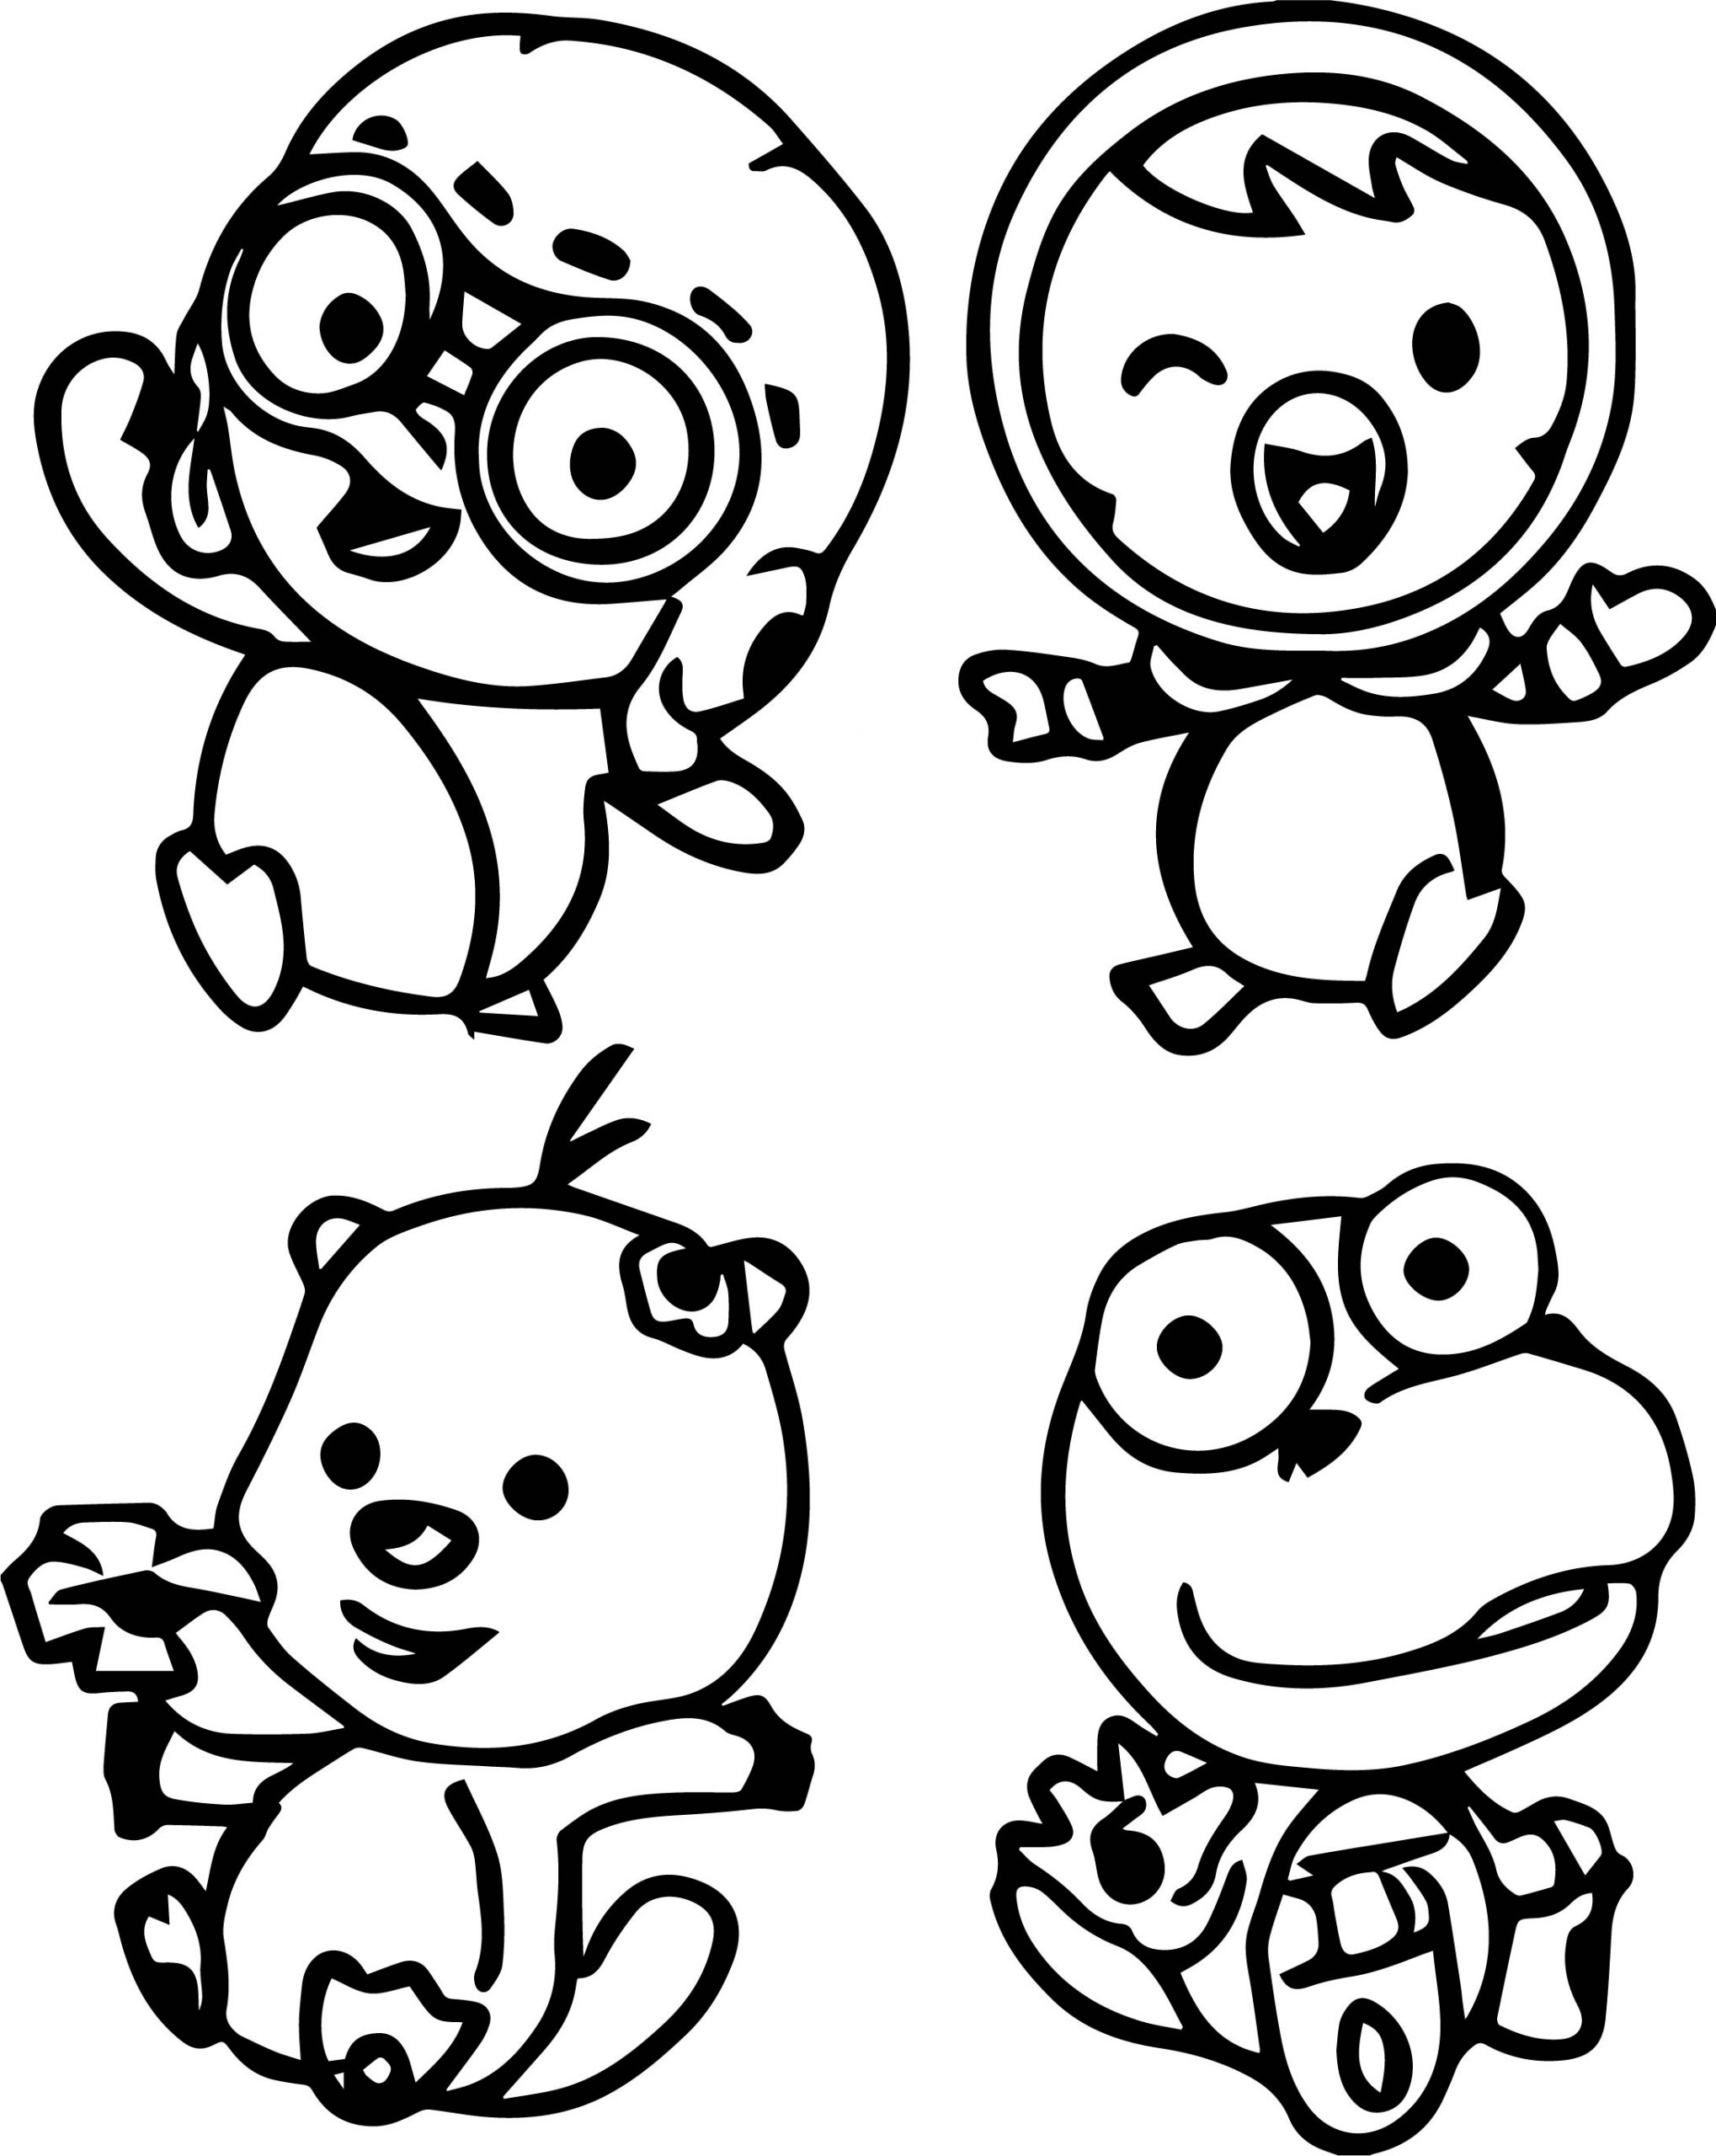 Pororo Family Coloring Page